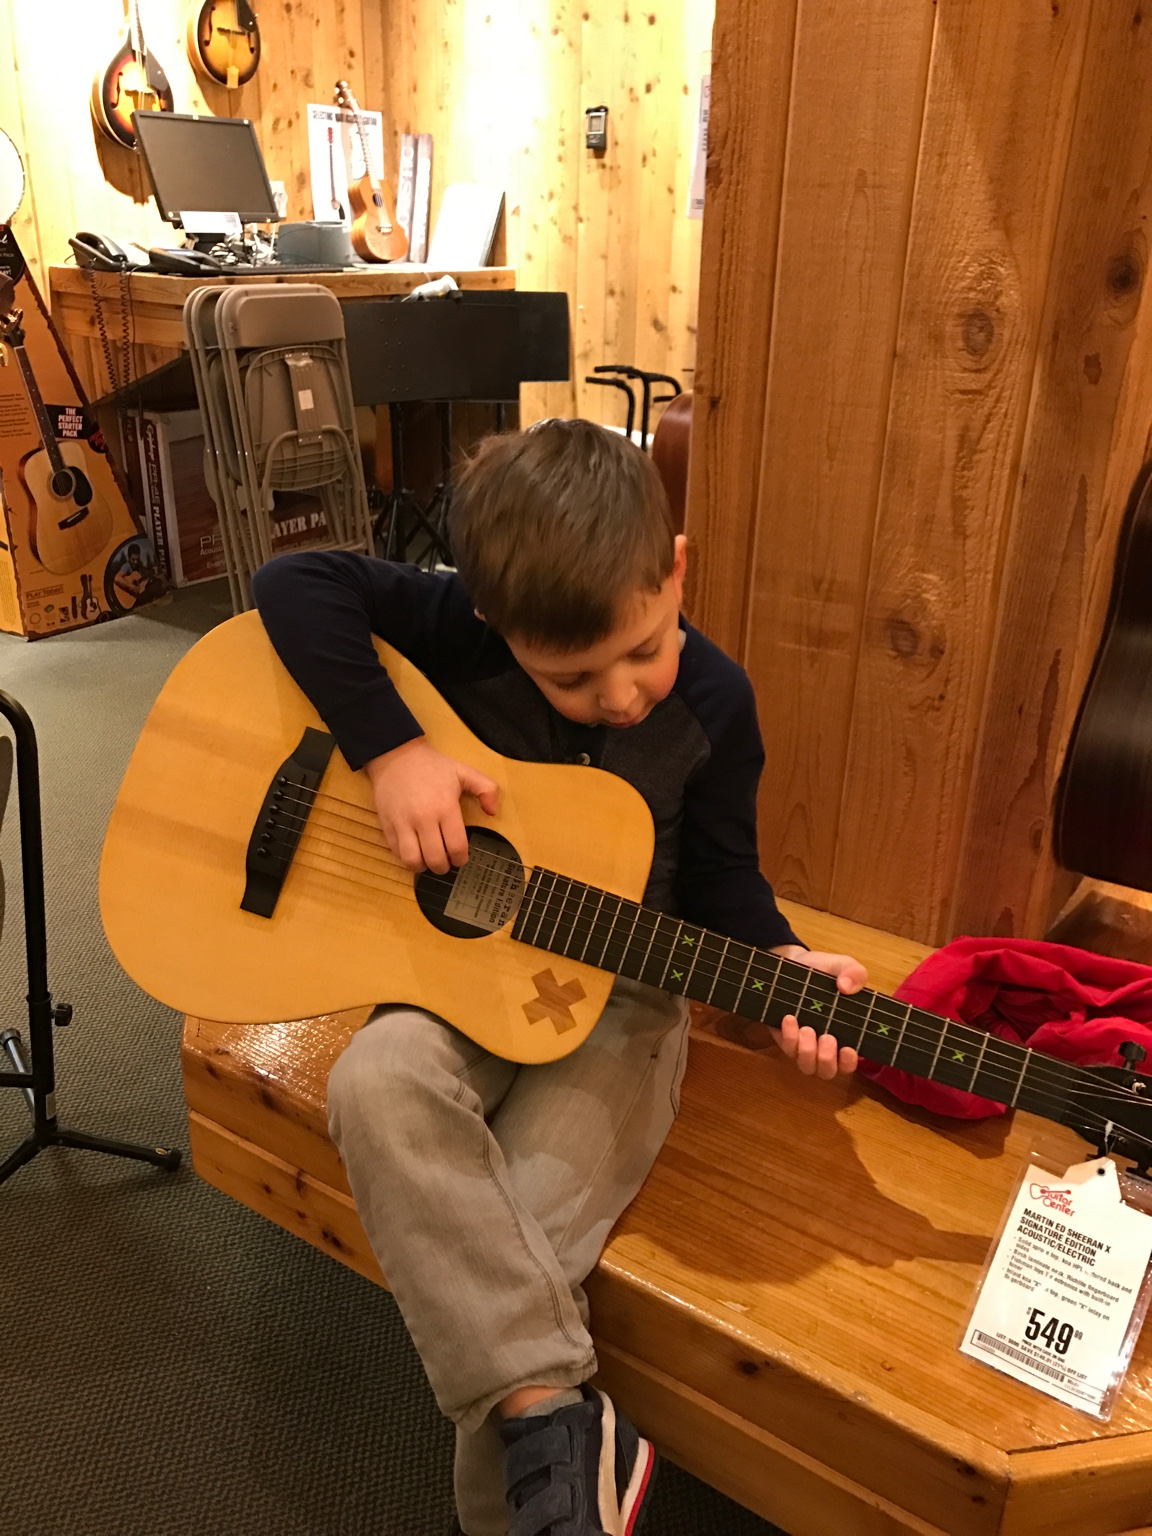 Guitar For 5 Year Old : first guitar for a 5 year old the acoustic guitar forum ~ Russianpoet.info Haus und Dekorationen